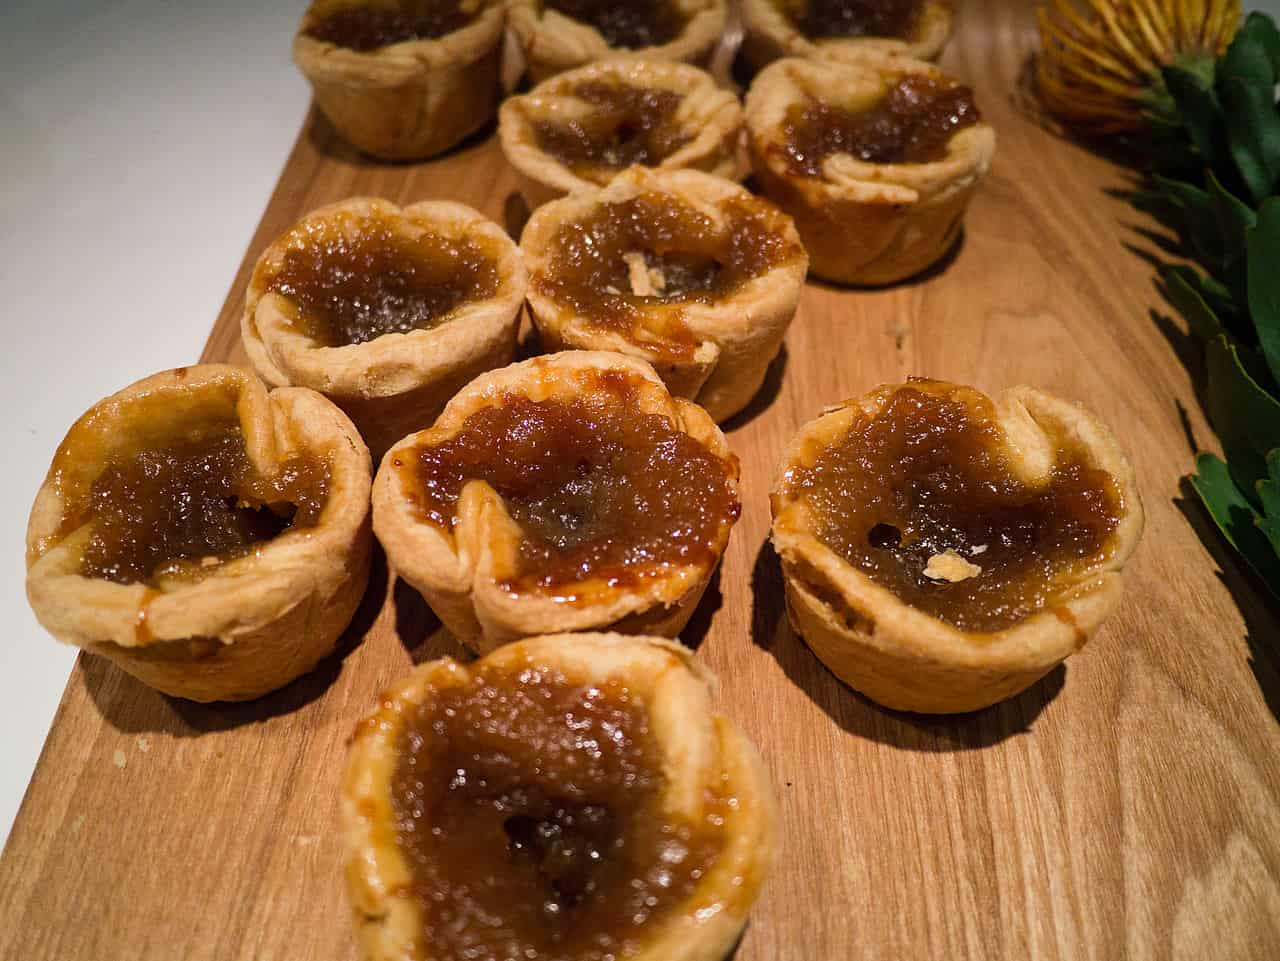 a table of butter tarts - Canada's National Dish